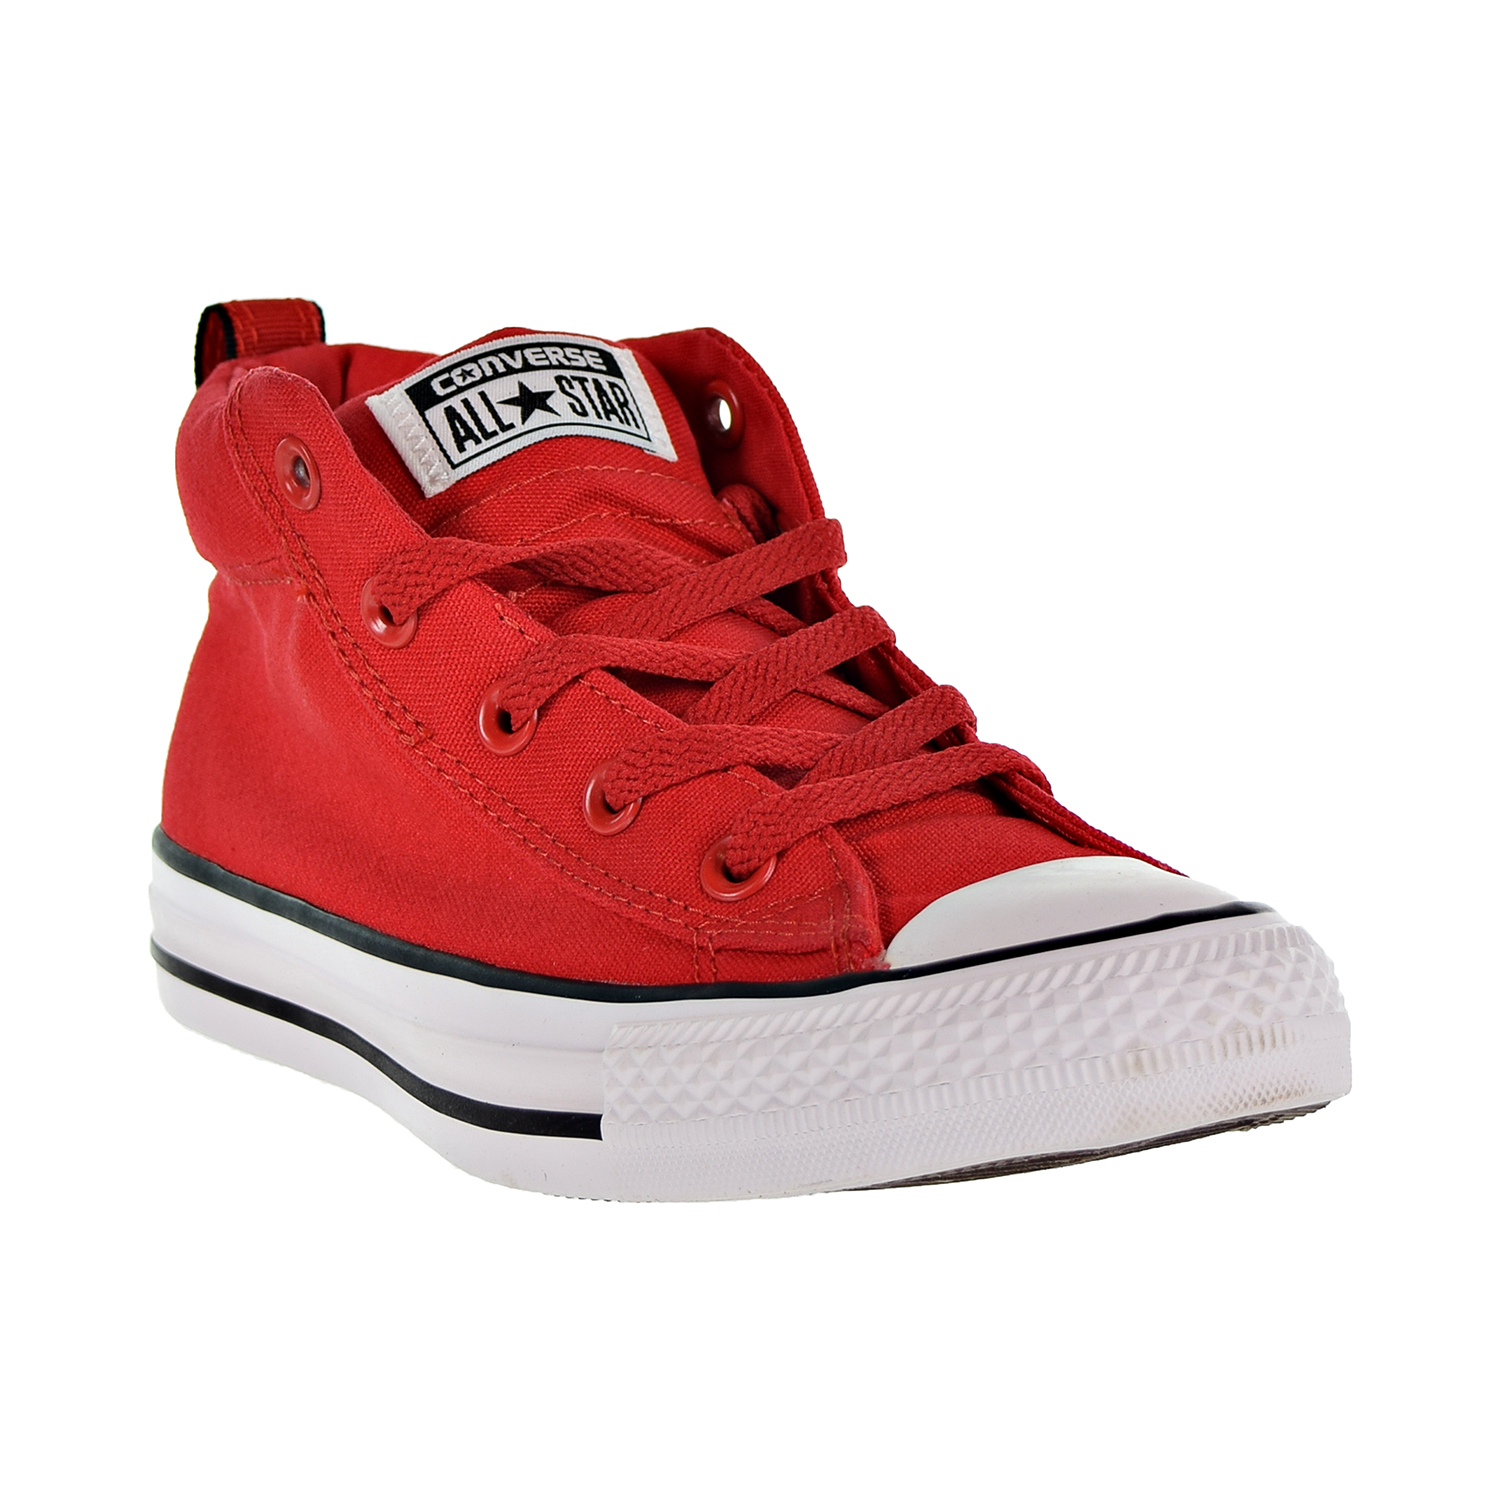 d6458606ded97c Converse Chuck Taylor All Star Street Mid Men s Shoes Casino Black White  157540f